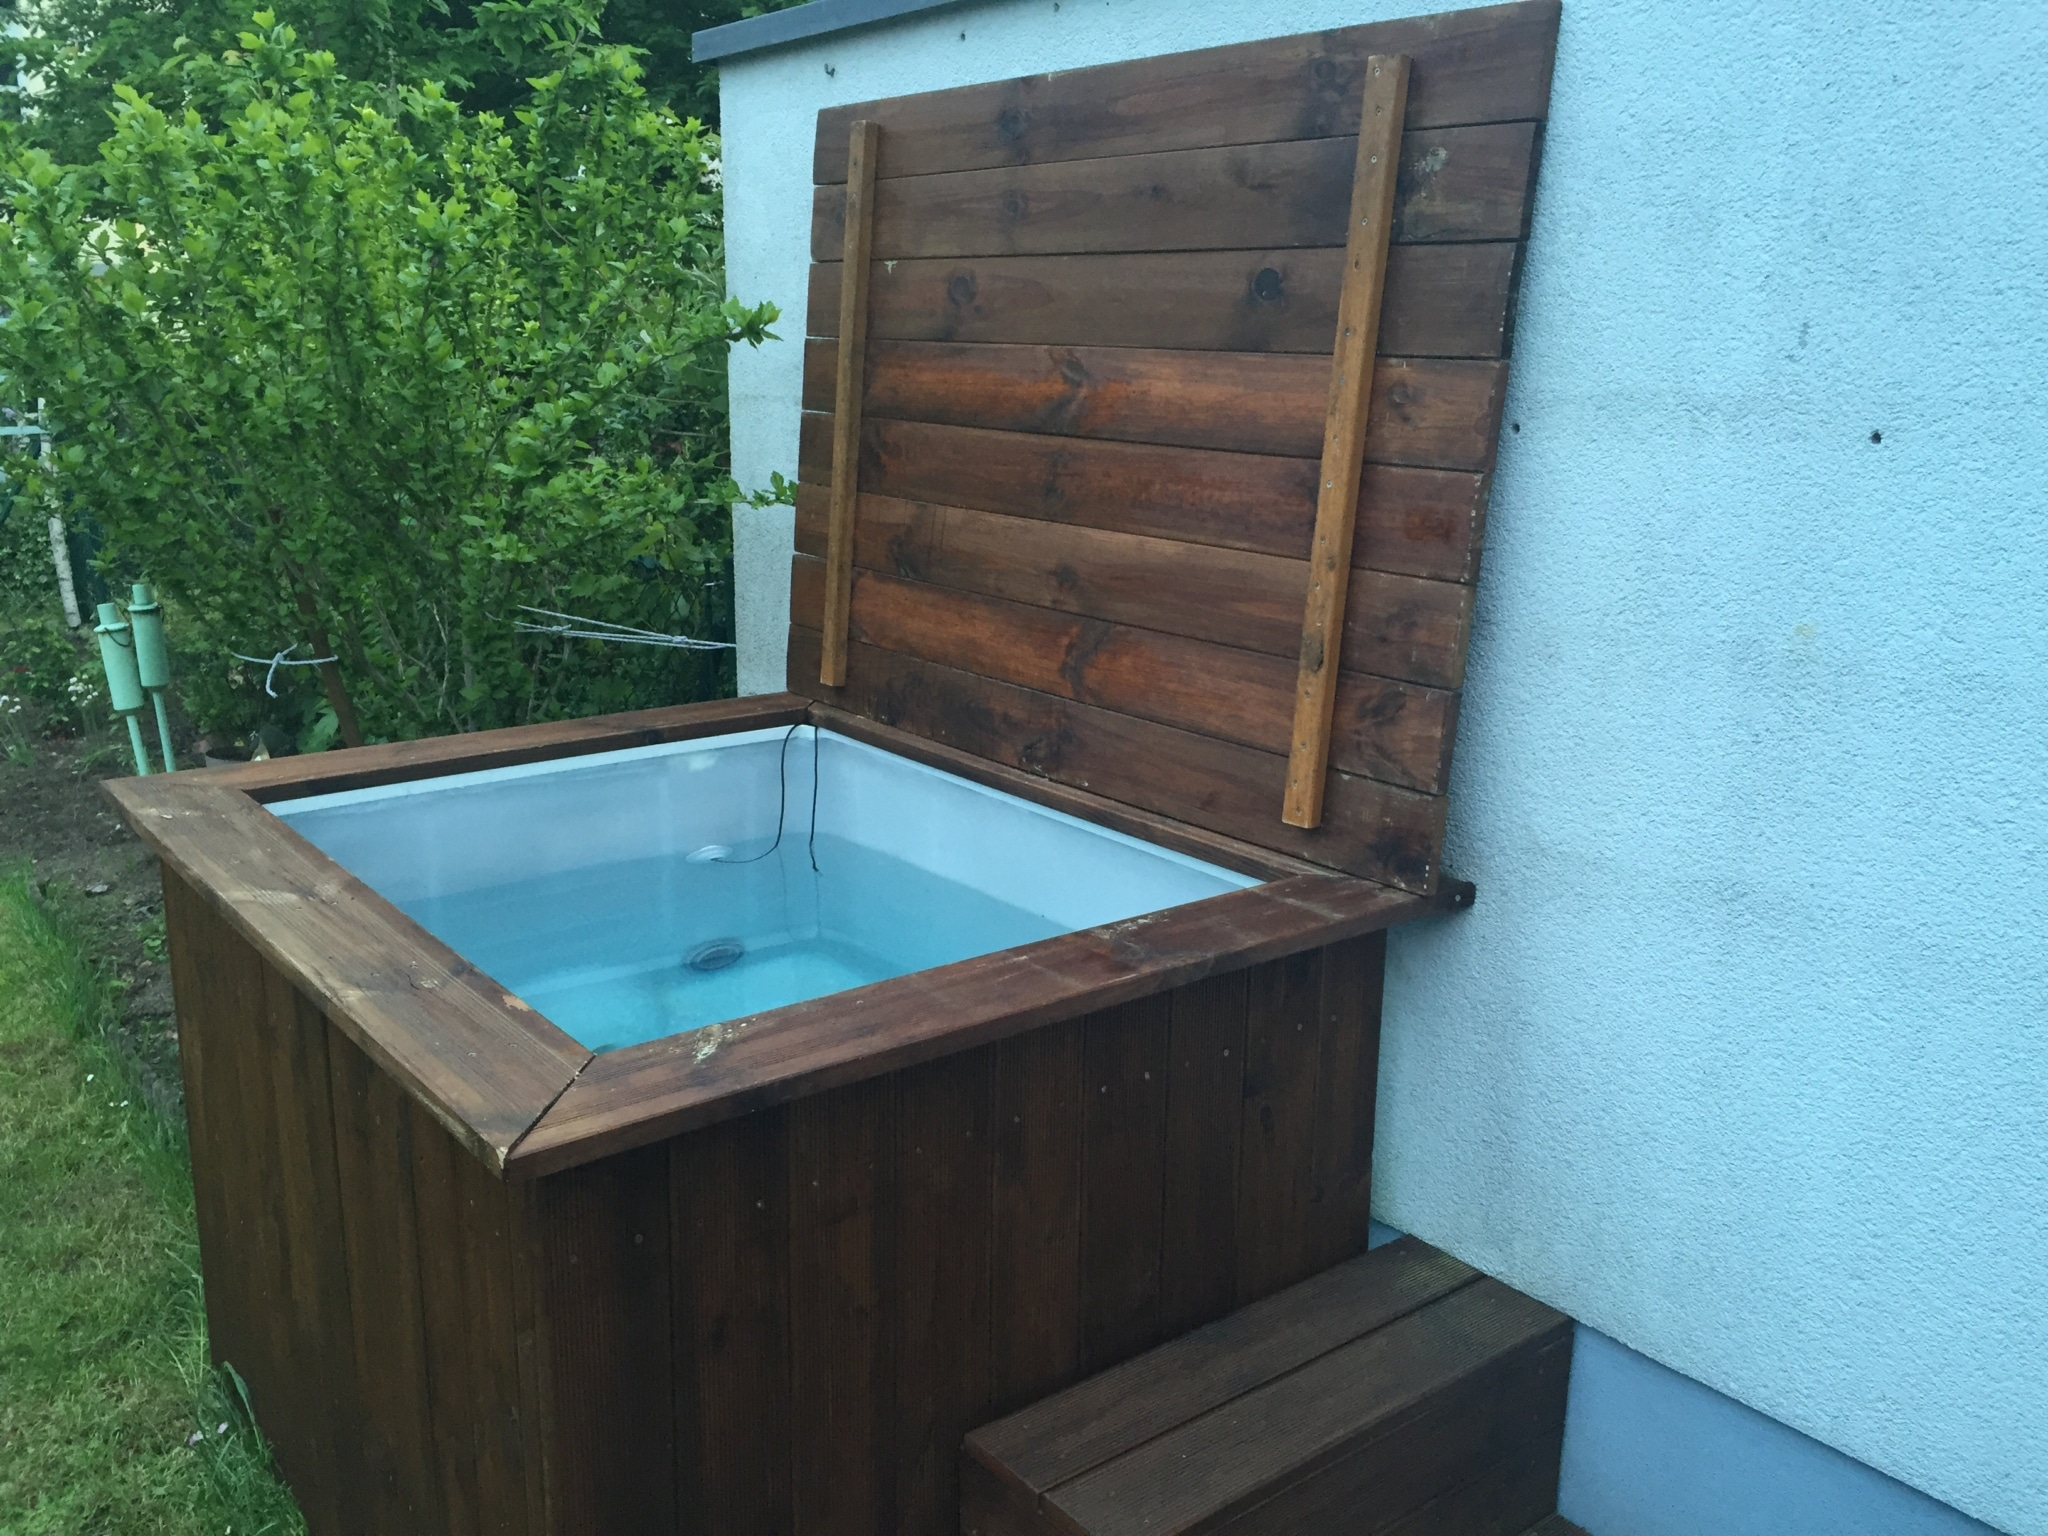 Pool Heizen Im Winter Diy Whirlpool Der Deckel Leckemojito You Are On The